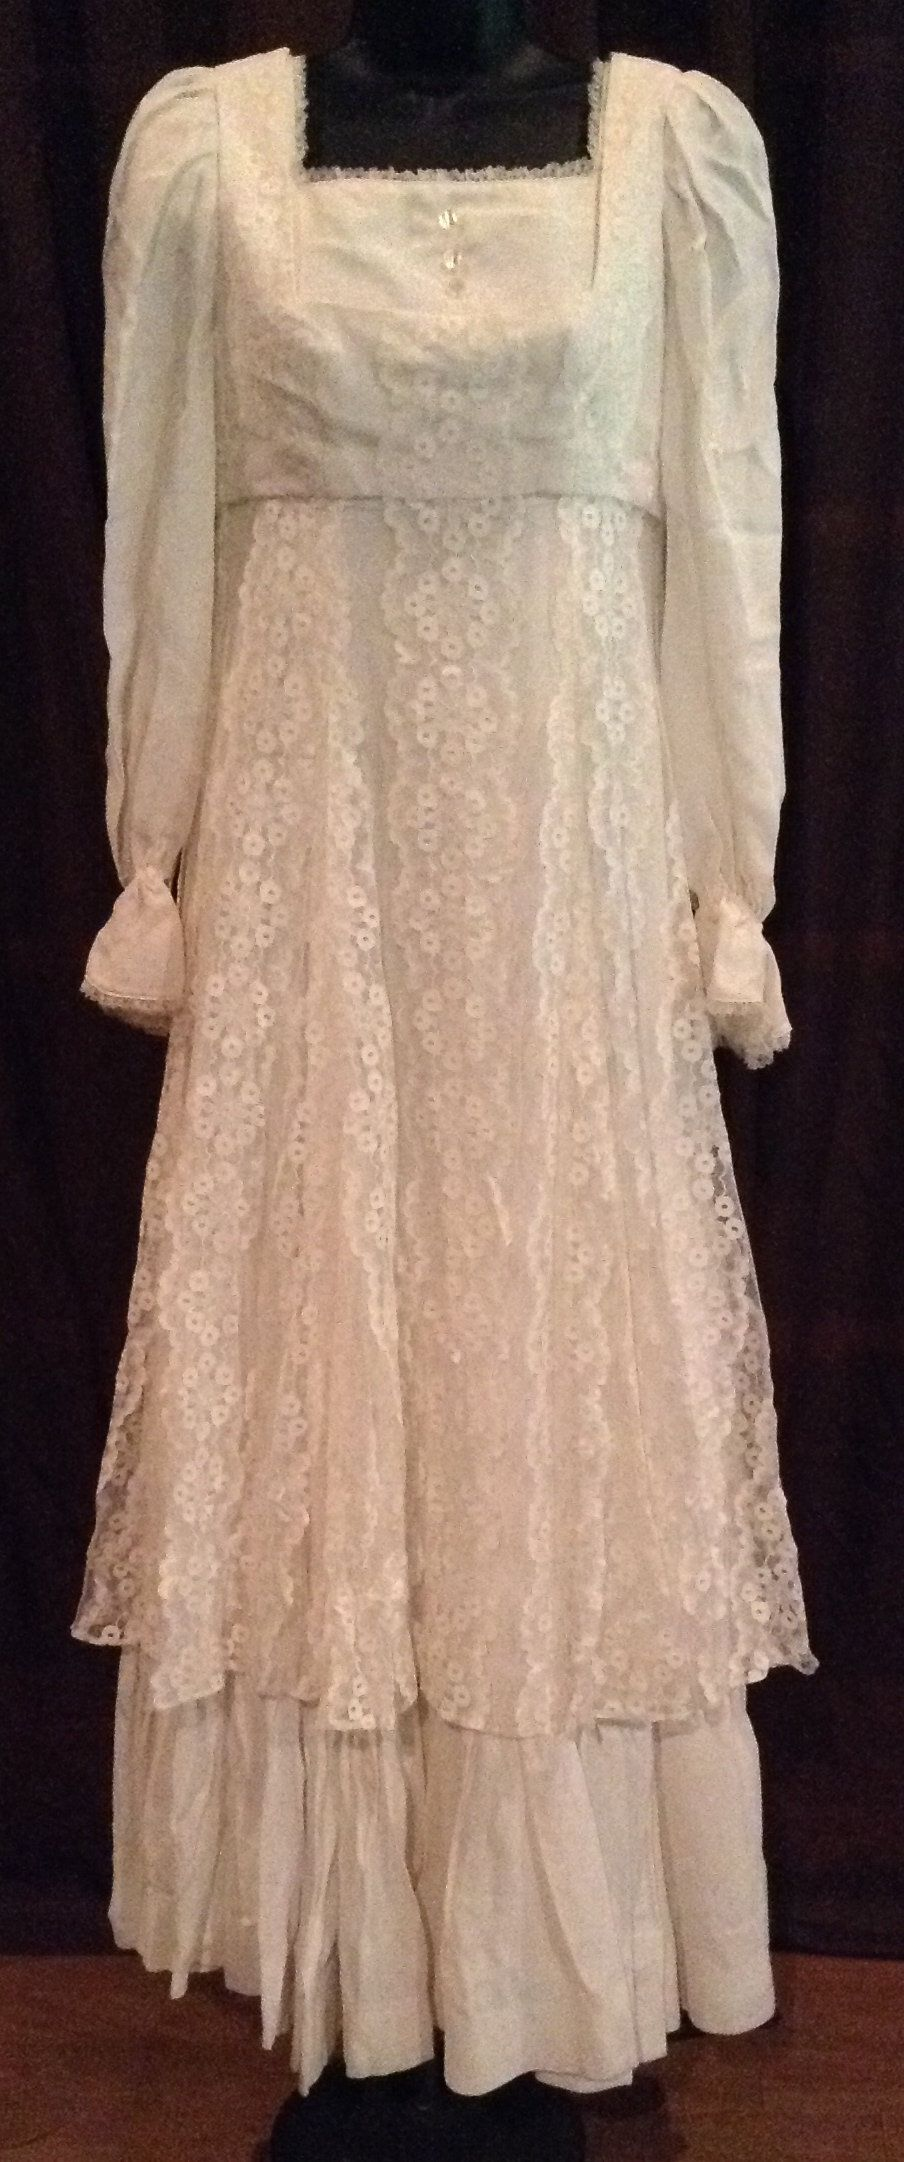 Vintage wedding dress ivory lace hippie style sunflower theme empire